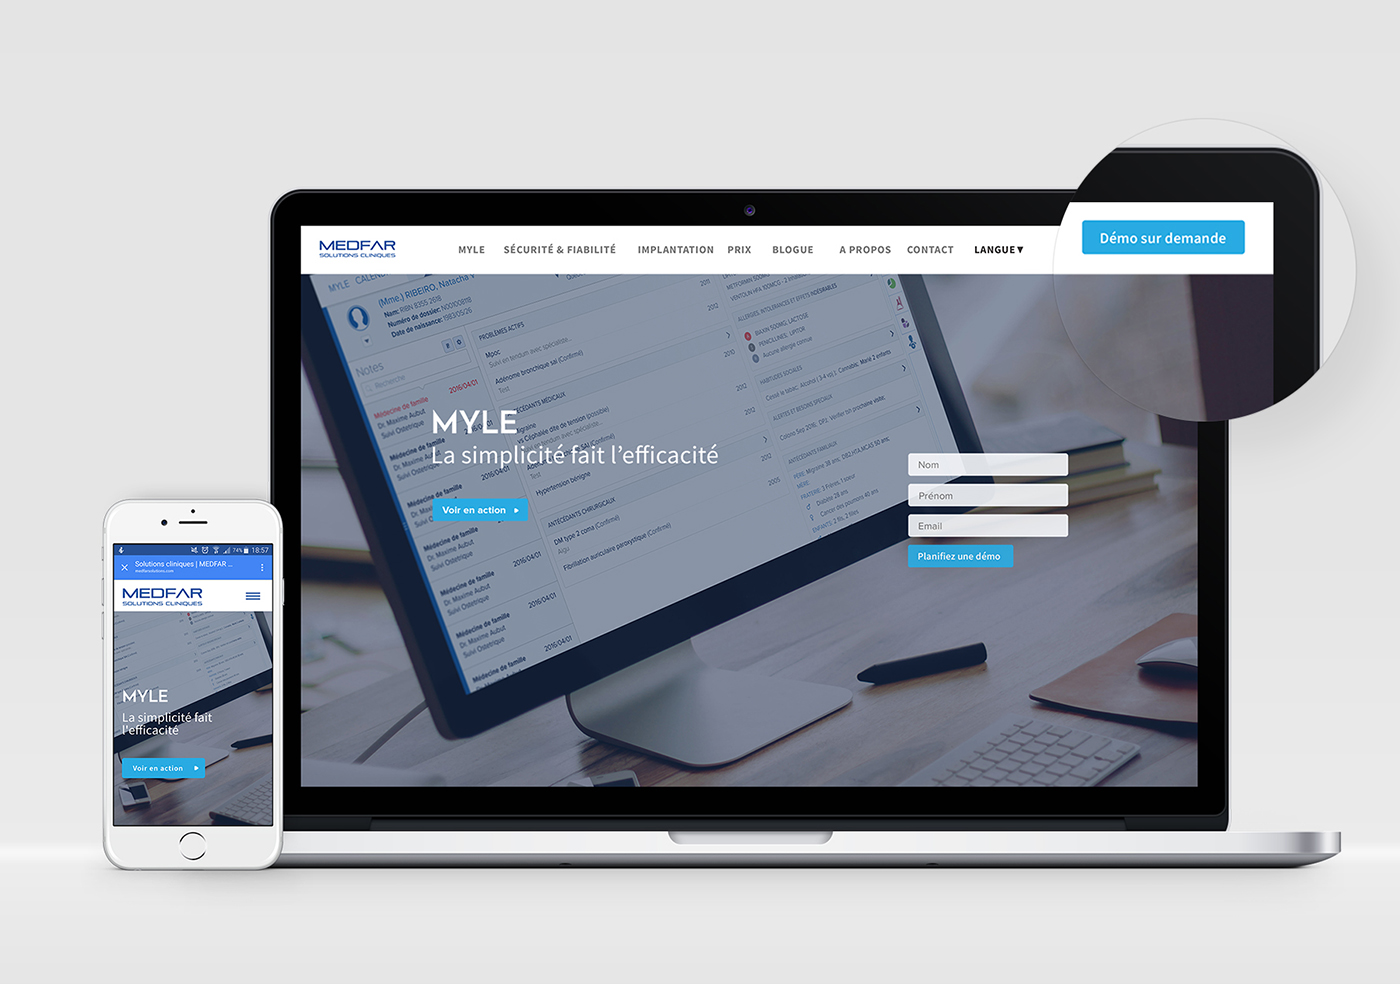 MEDFAR corporate website